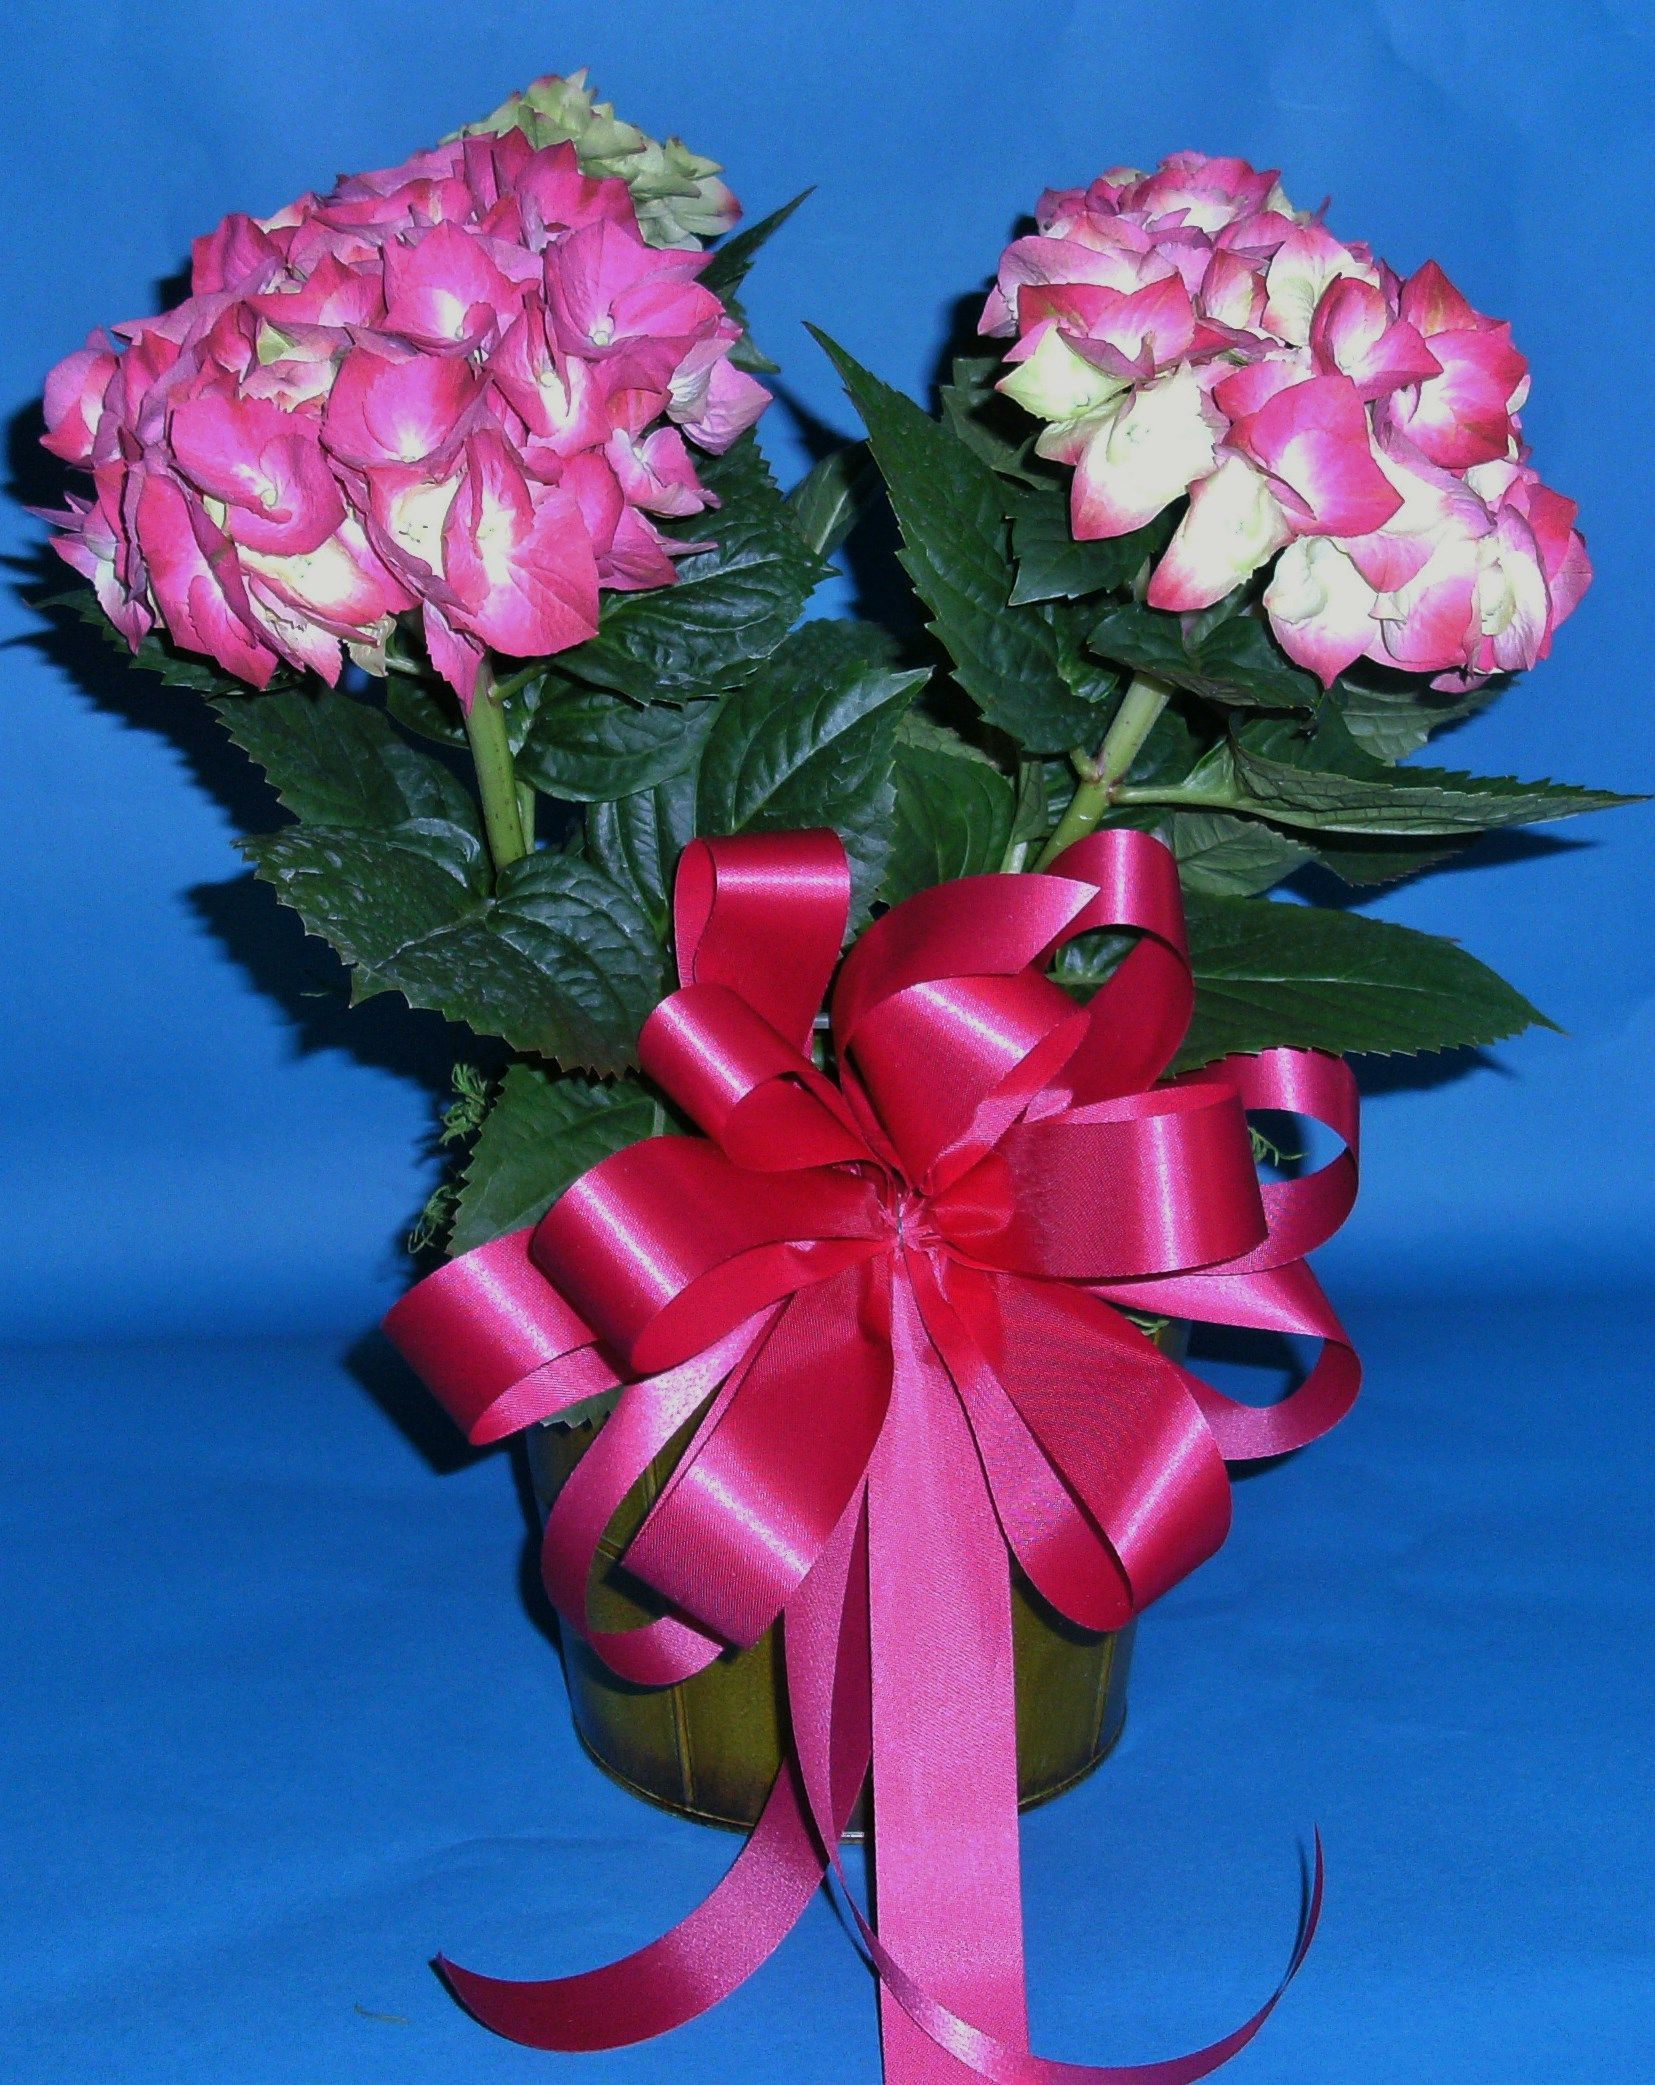 PINK HYDRANGEA IN GREEN METAL IN CONTAINER